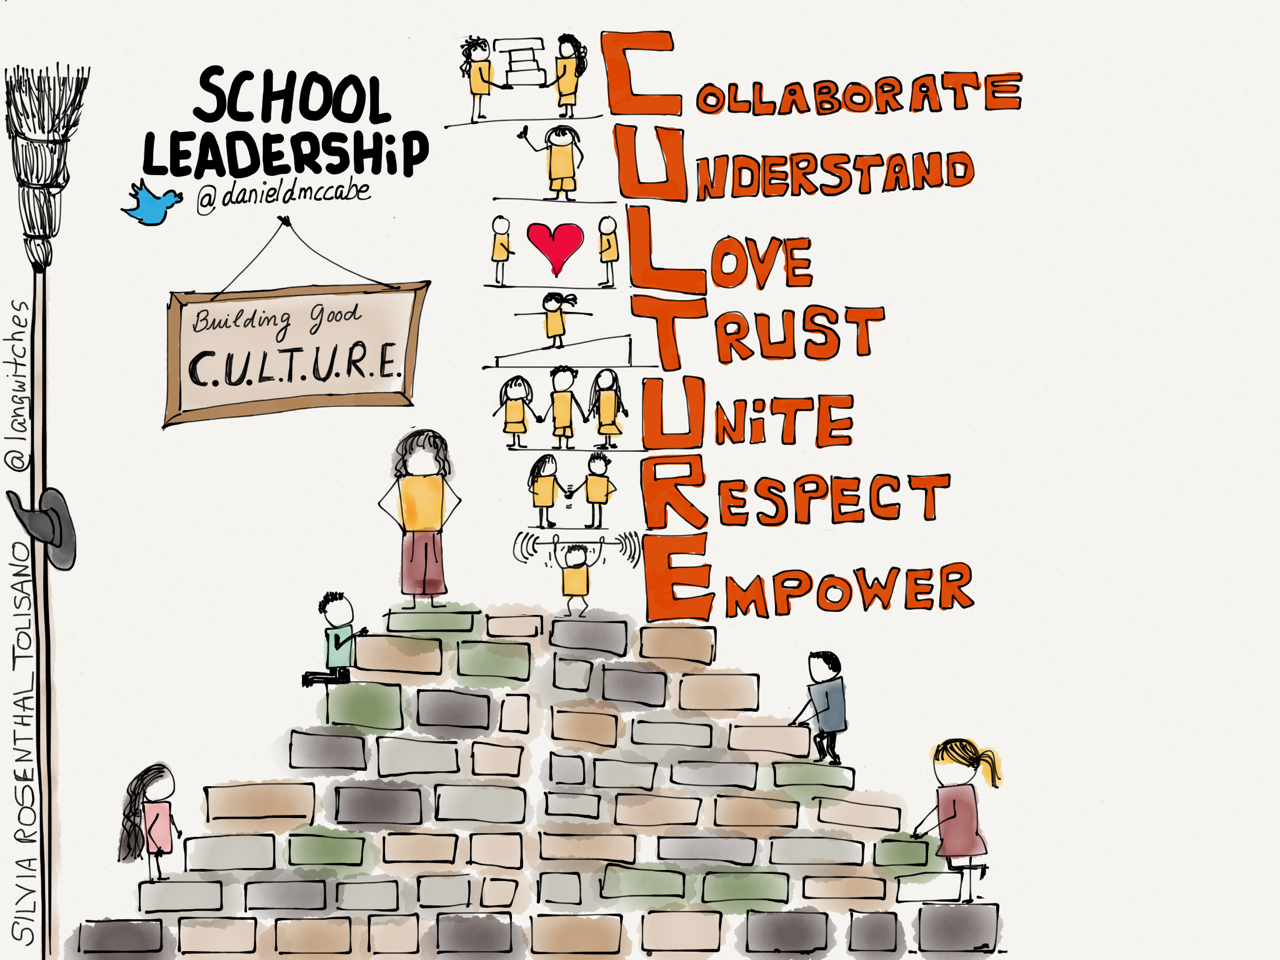 http://langwitches.org/blog/wp-content/uploads/2014/07/building-good-culture.png